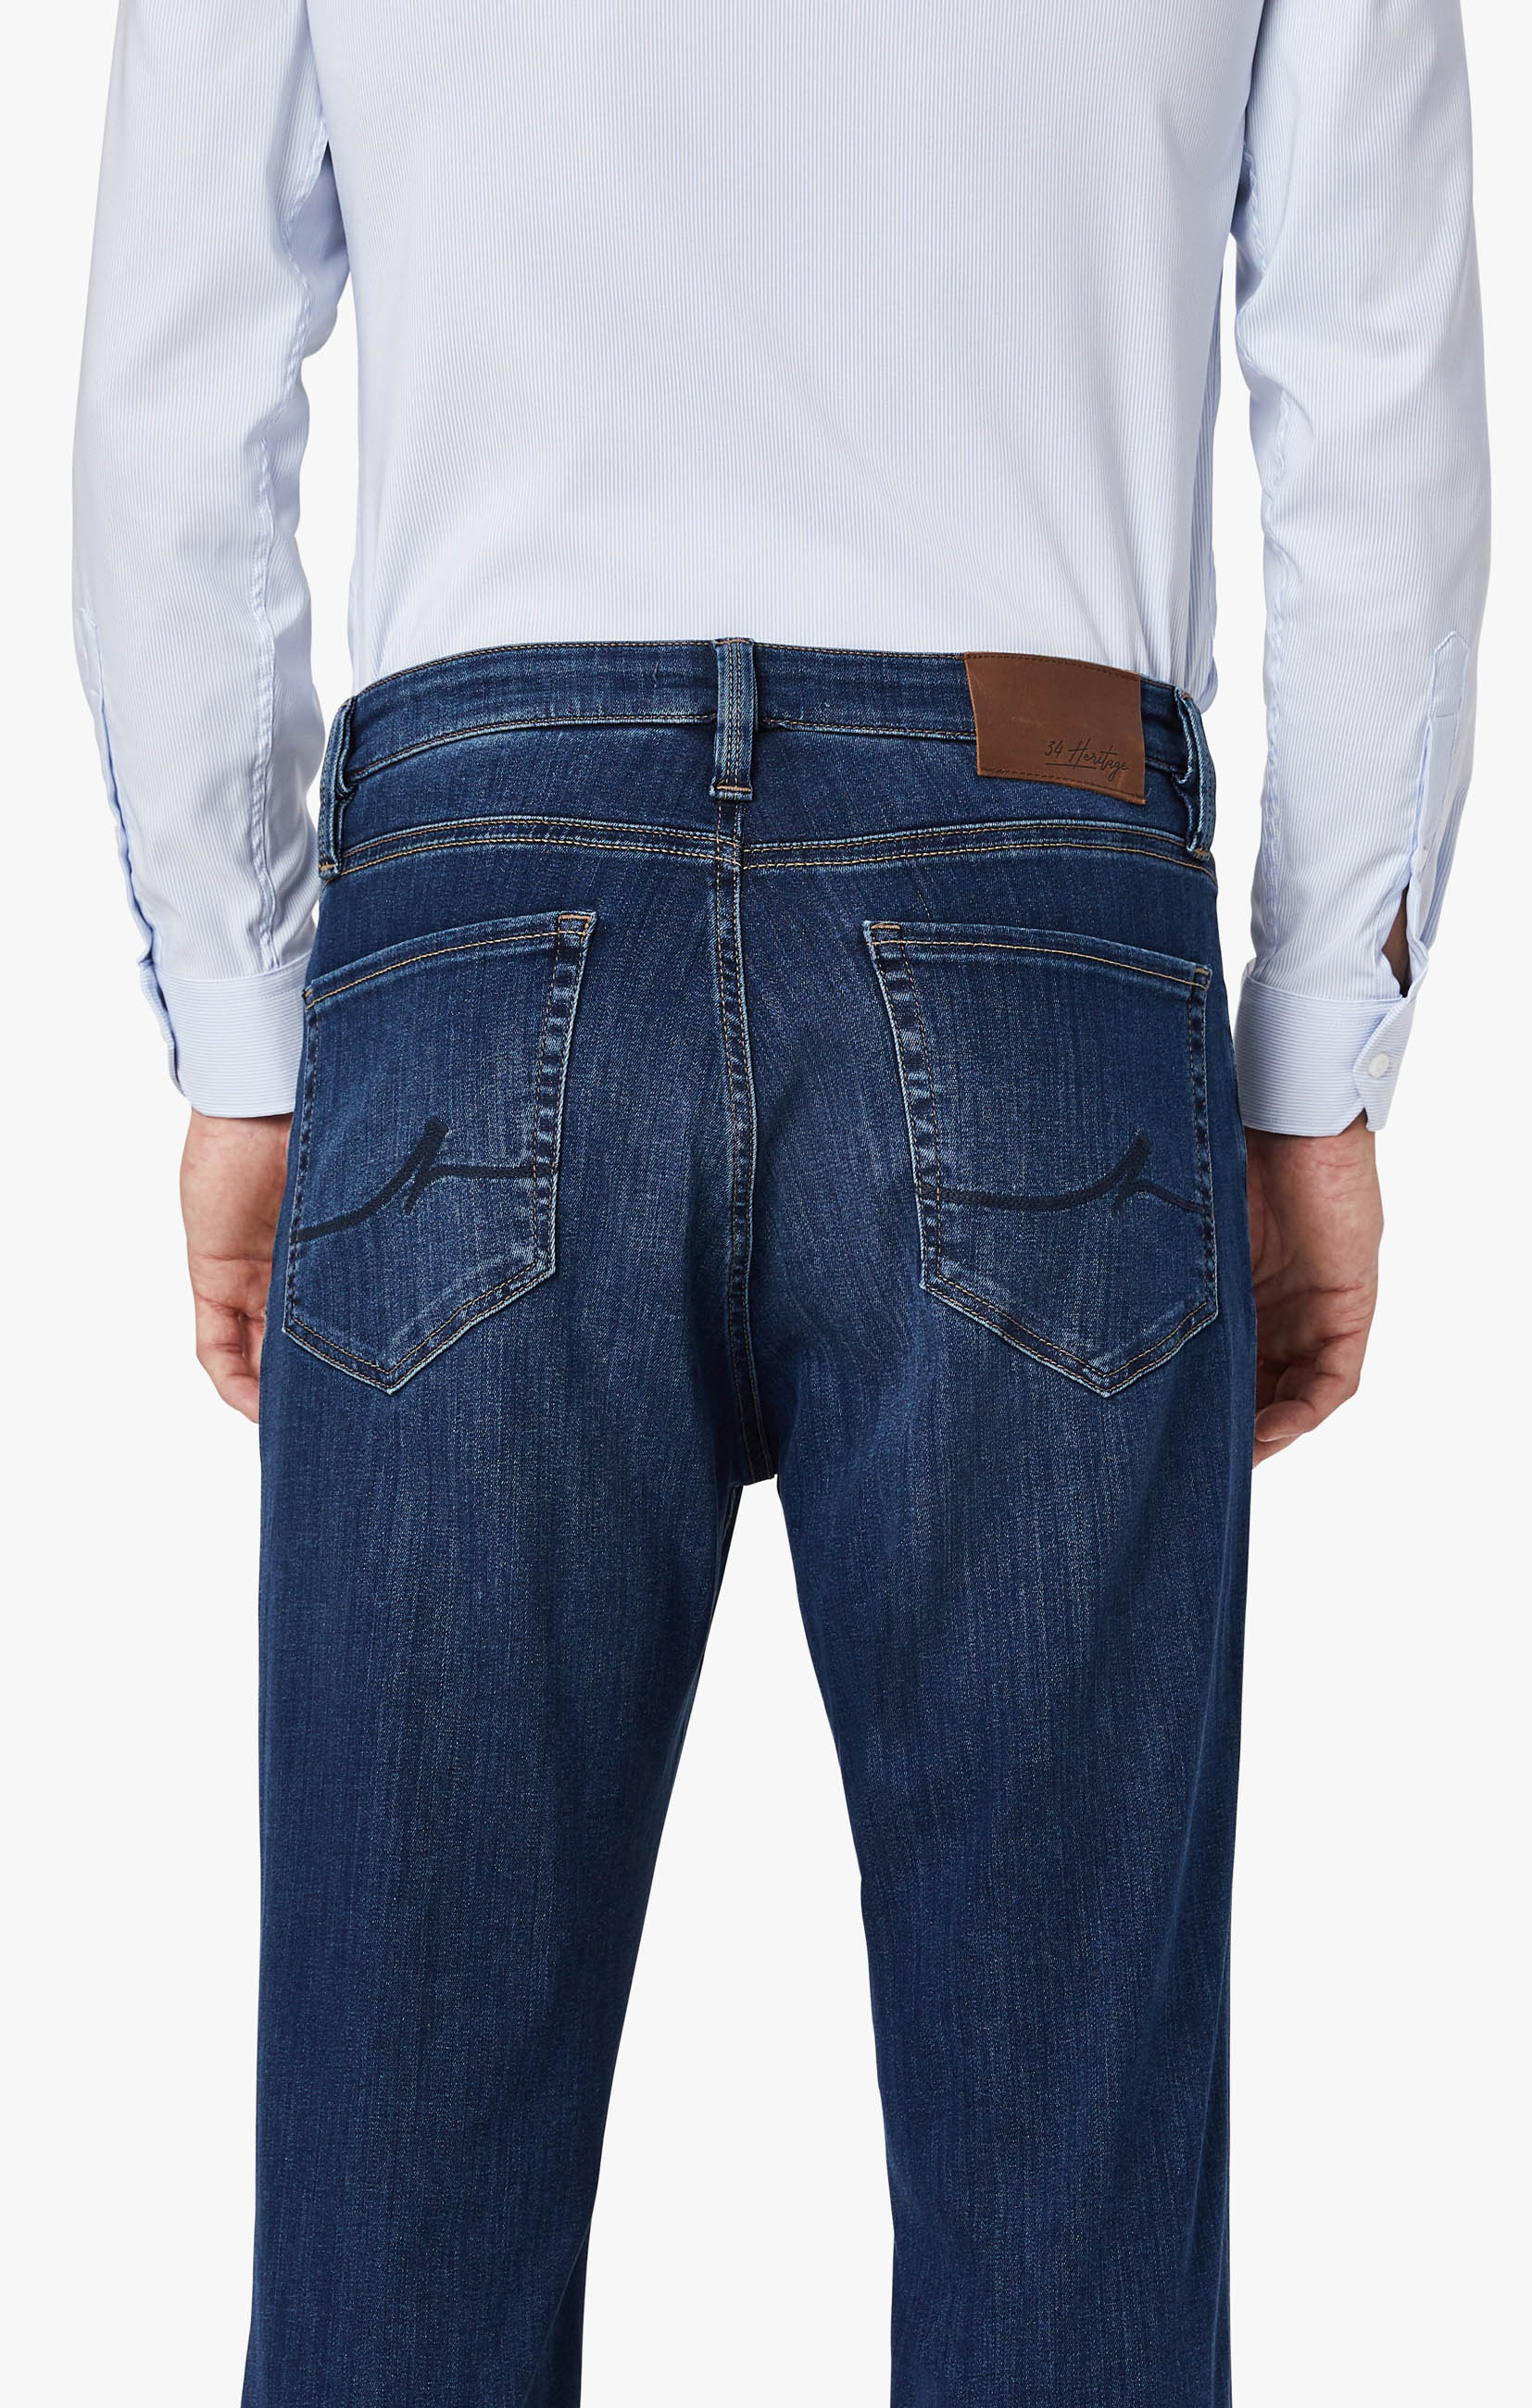 Cool Tapered Leg Jeans In Mid Siena Image 6